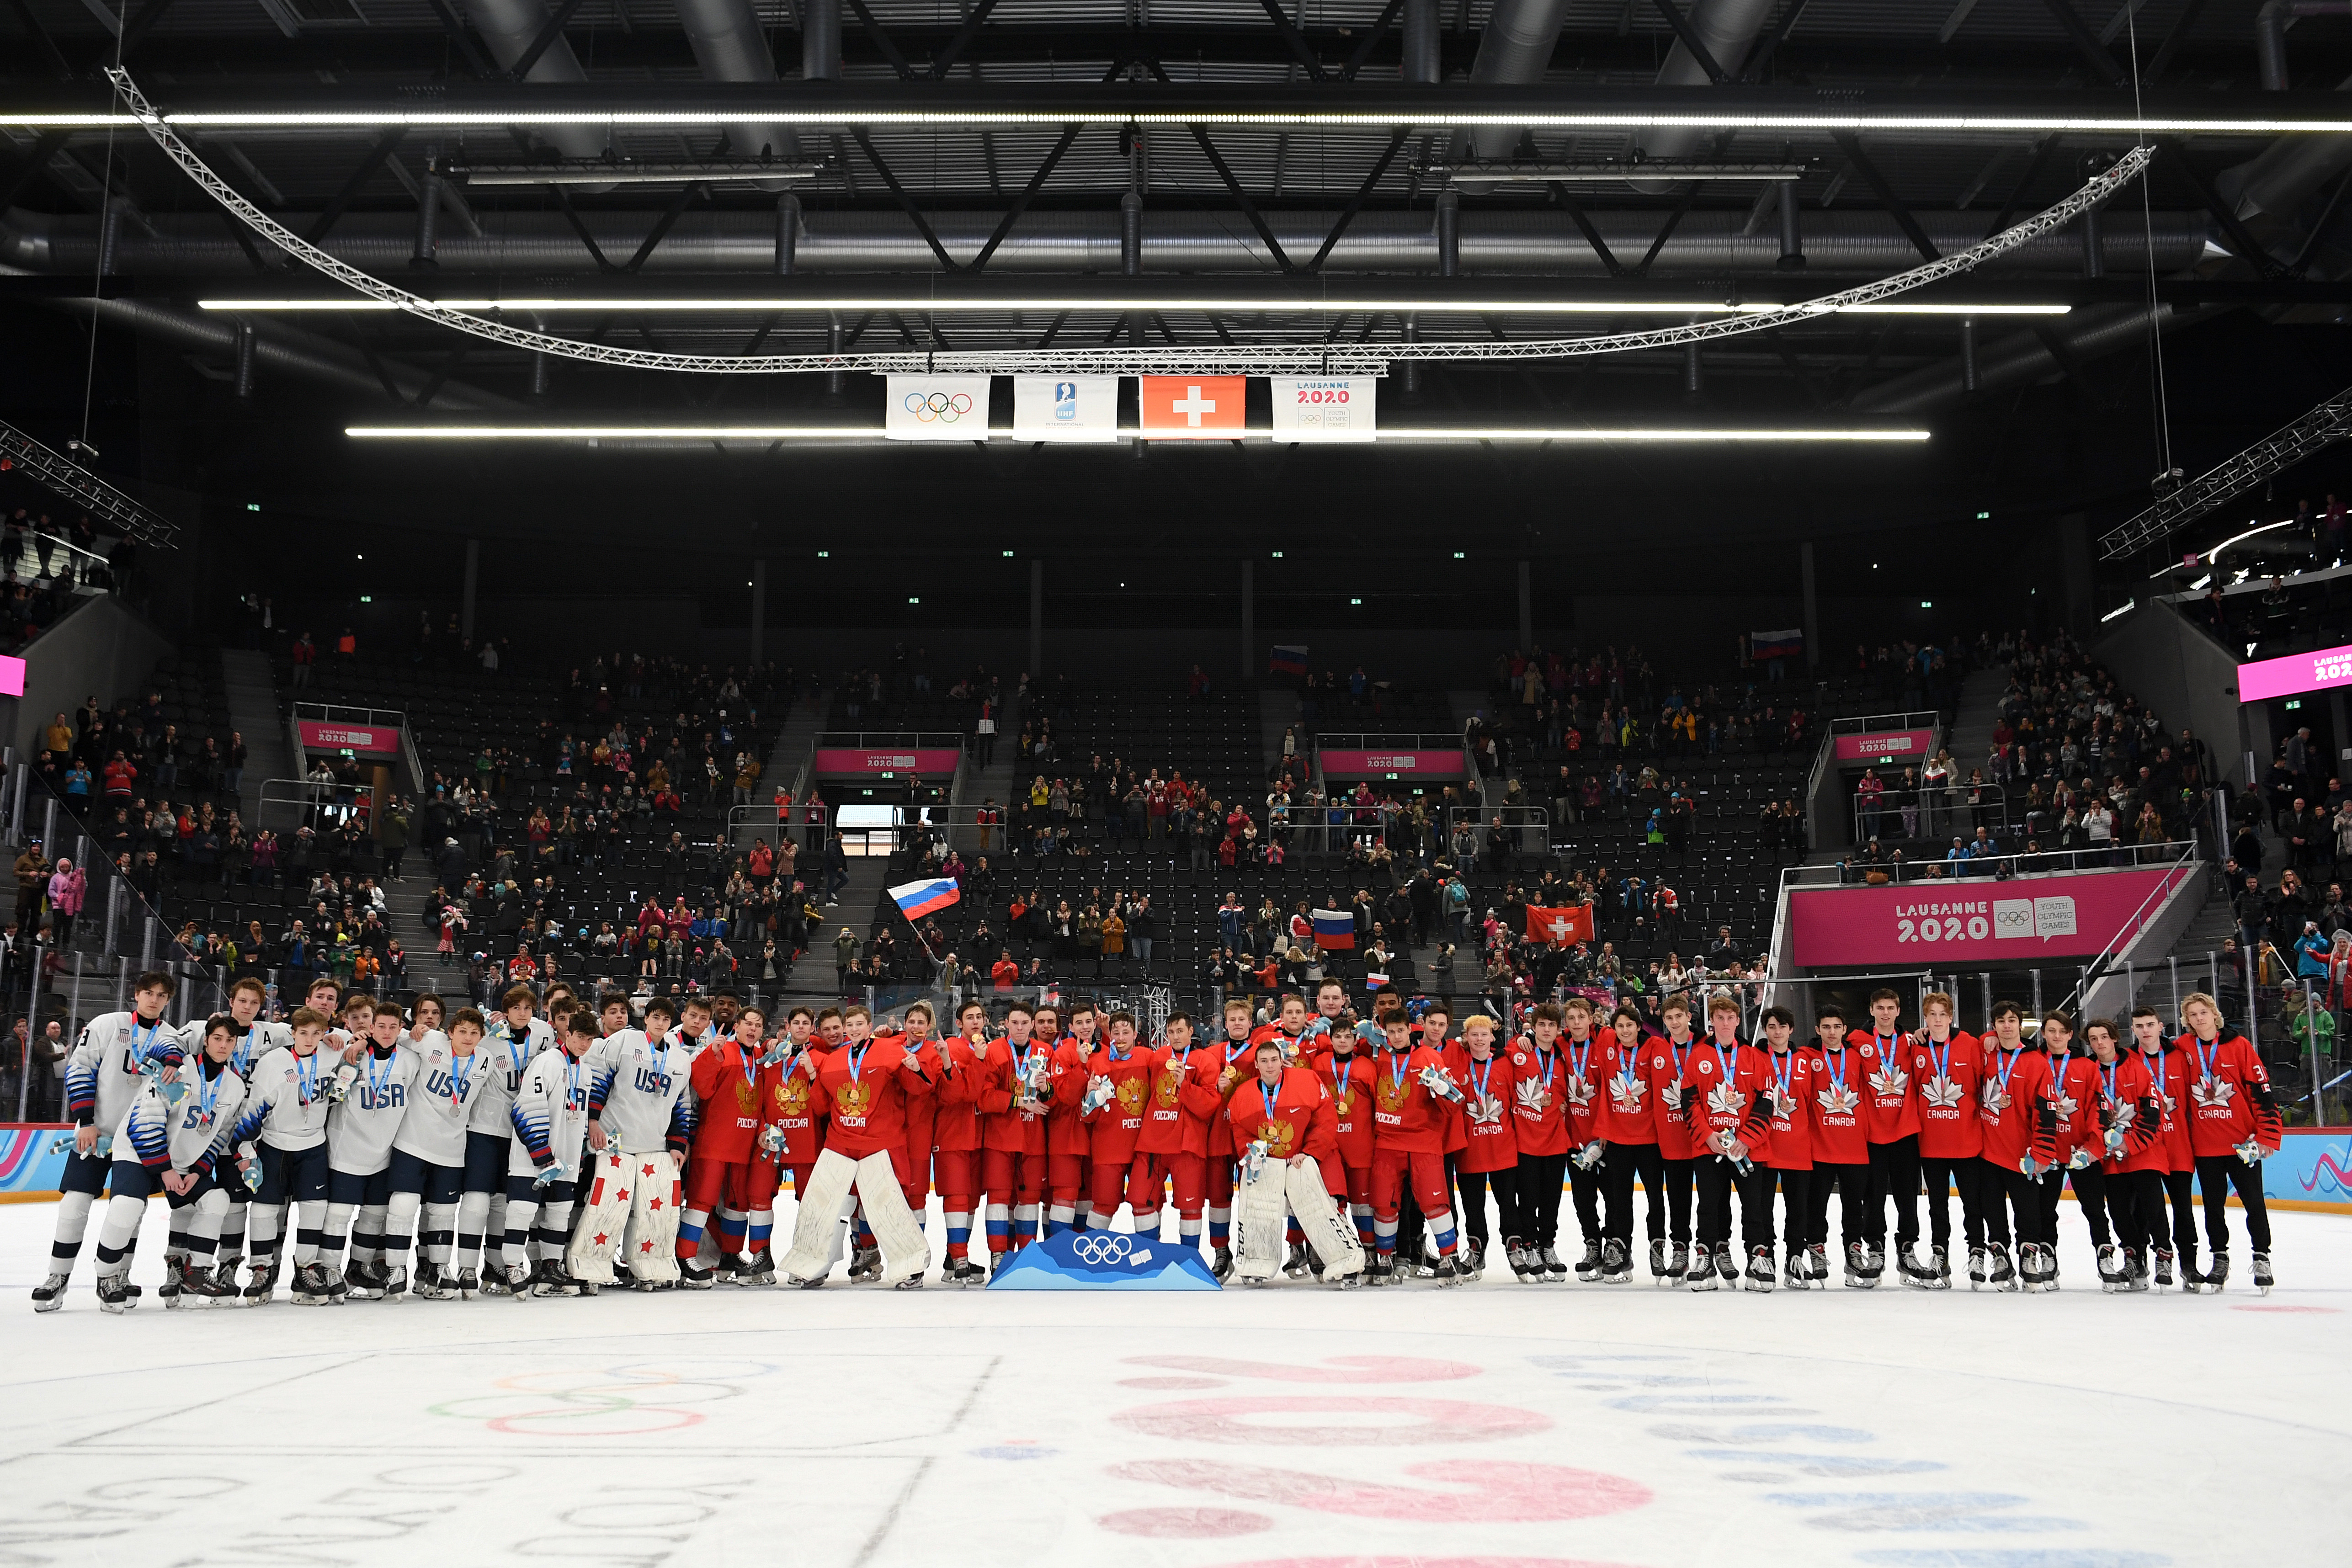 Lausanne 2020 Winter Youth Olympics - Day 13